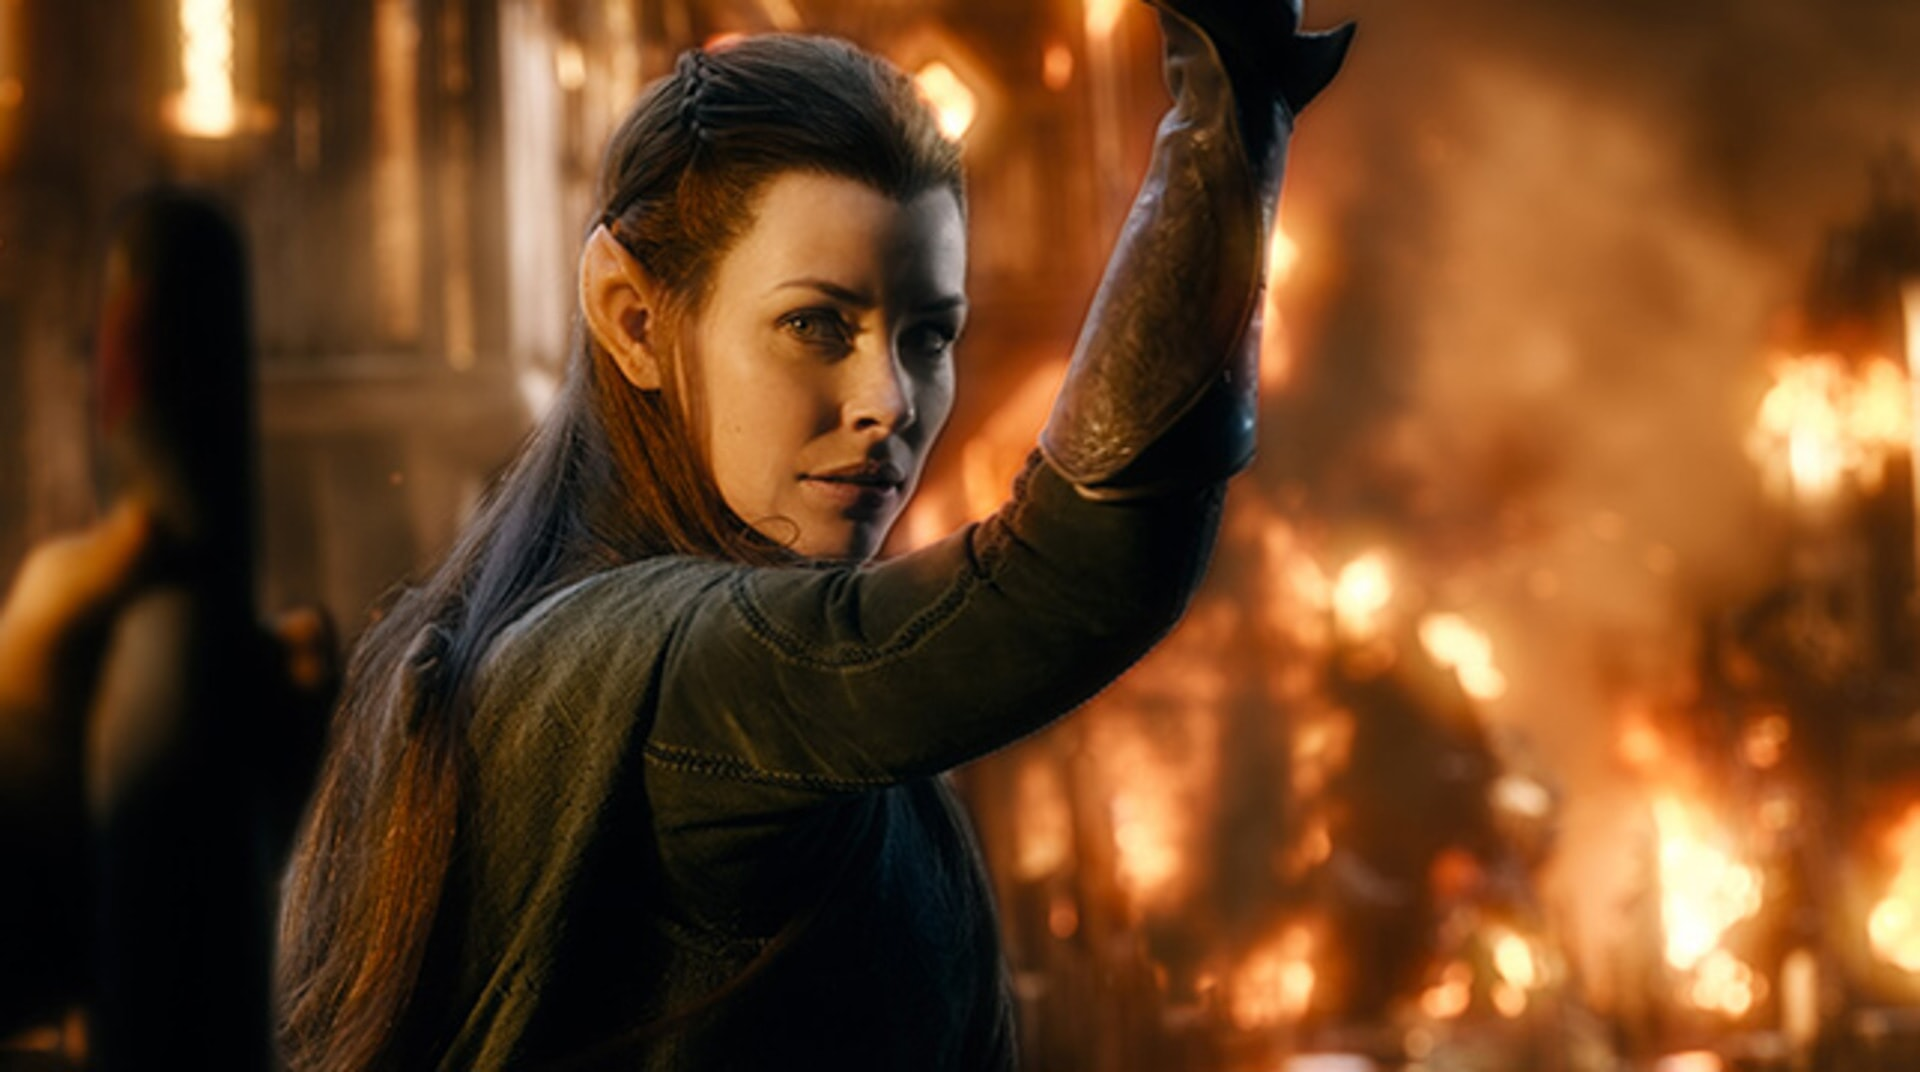 The Hobbit: The Battle of the Five Armies - Image 21